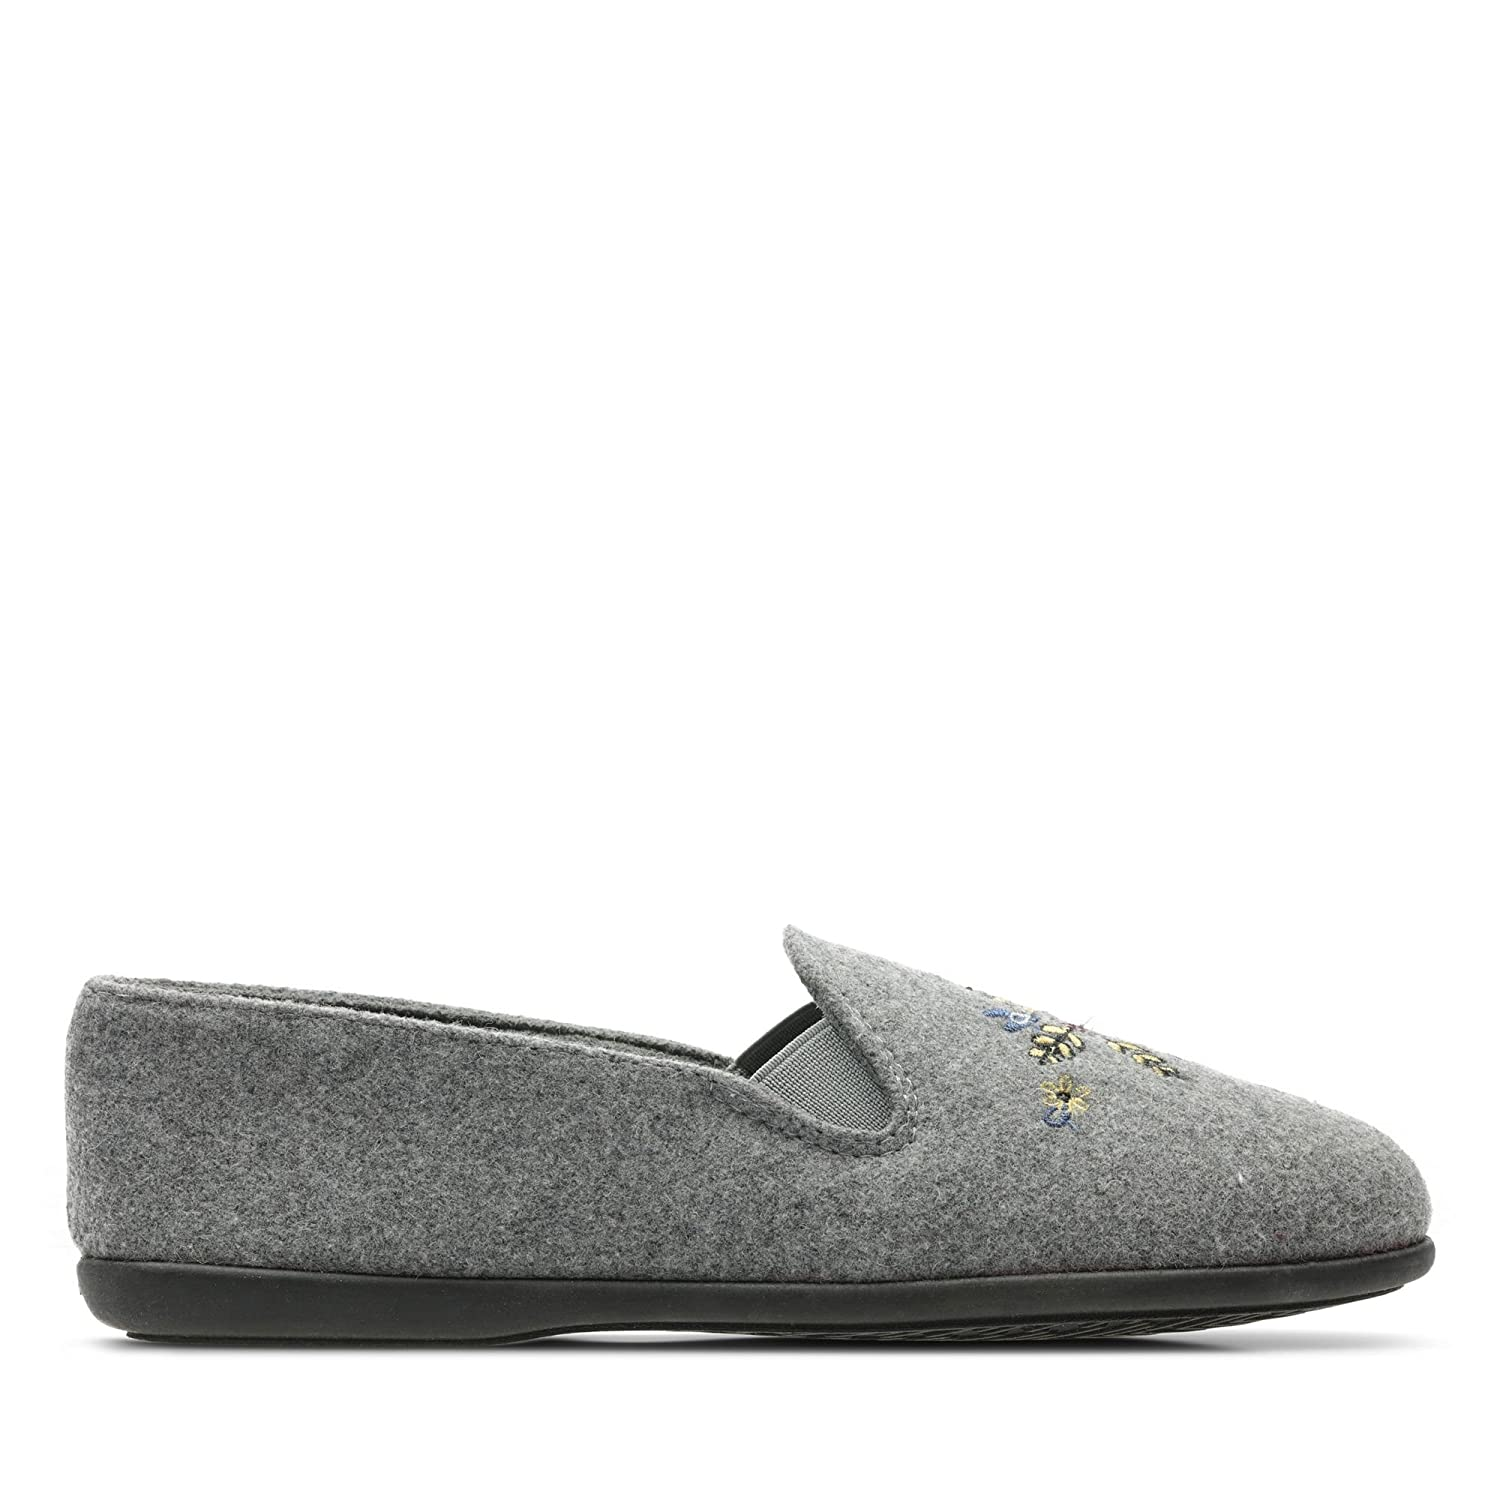 38a562a8e99 Clarks Marsha Star Textile Slippers in Grey  Amazon.co.uk  Shoes   Bags